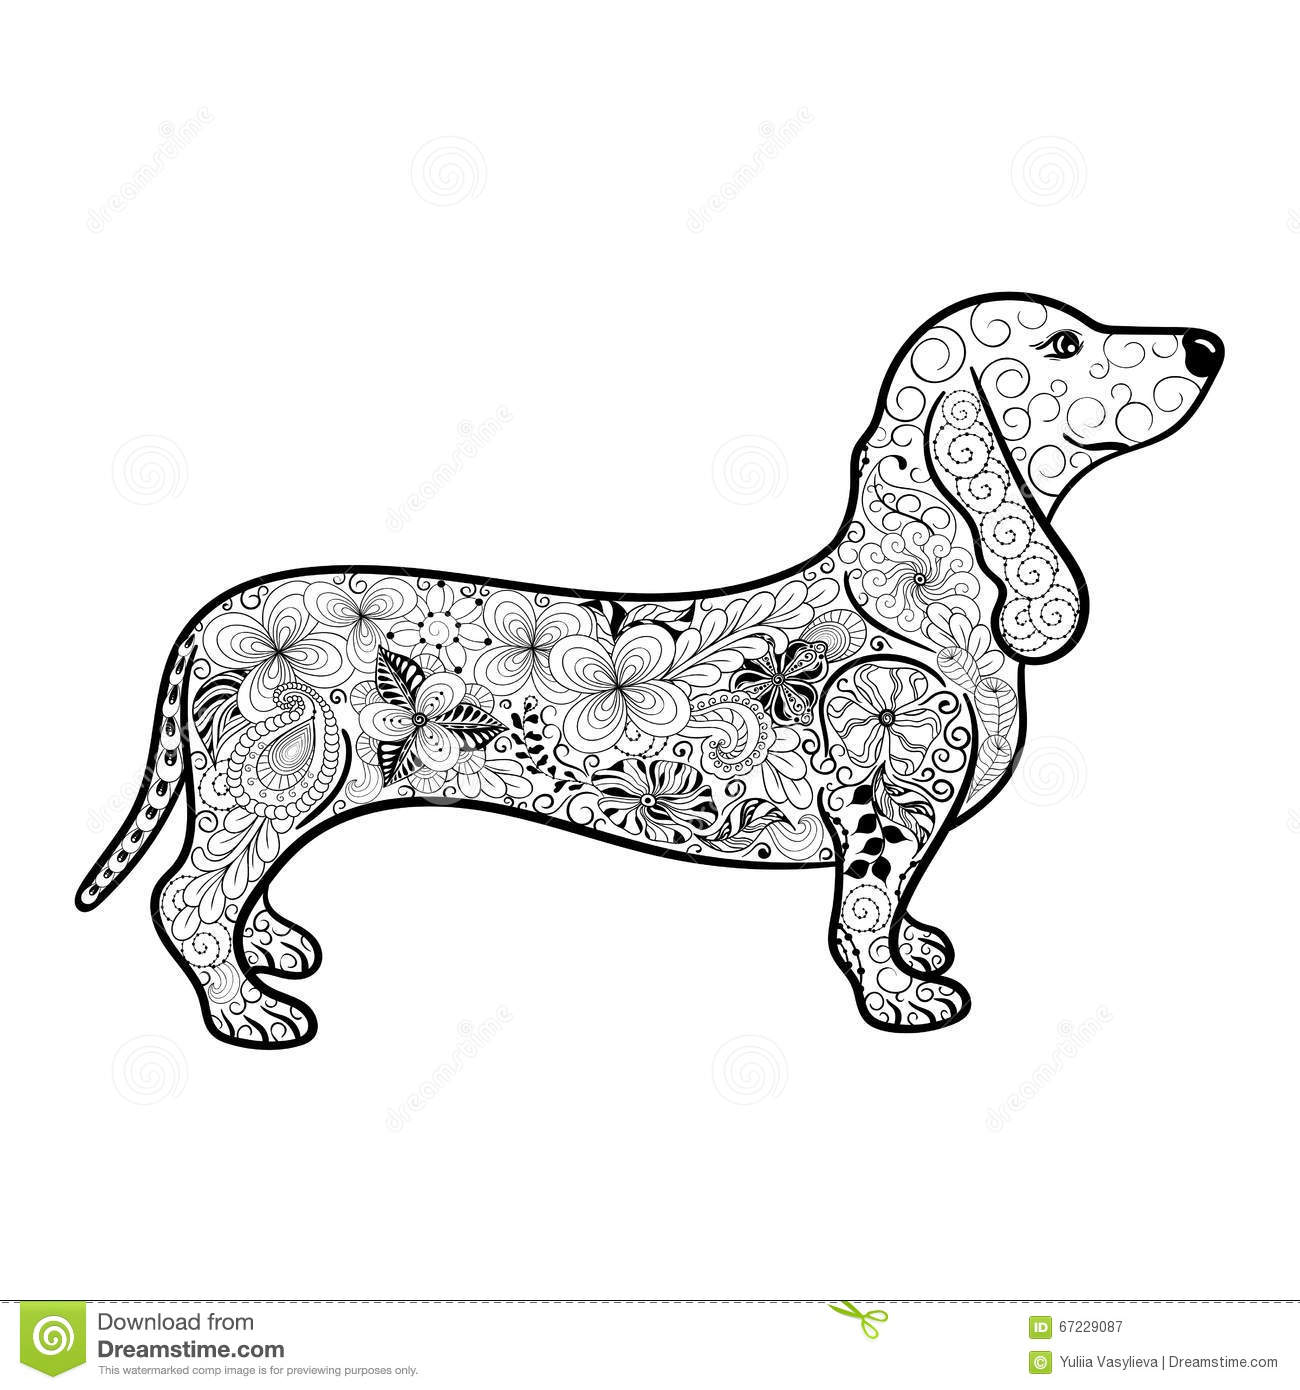 Dachshund Doodle Stock Vector Illustration Of Animal